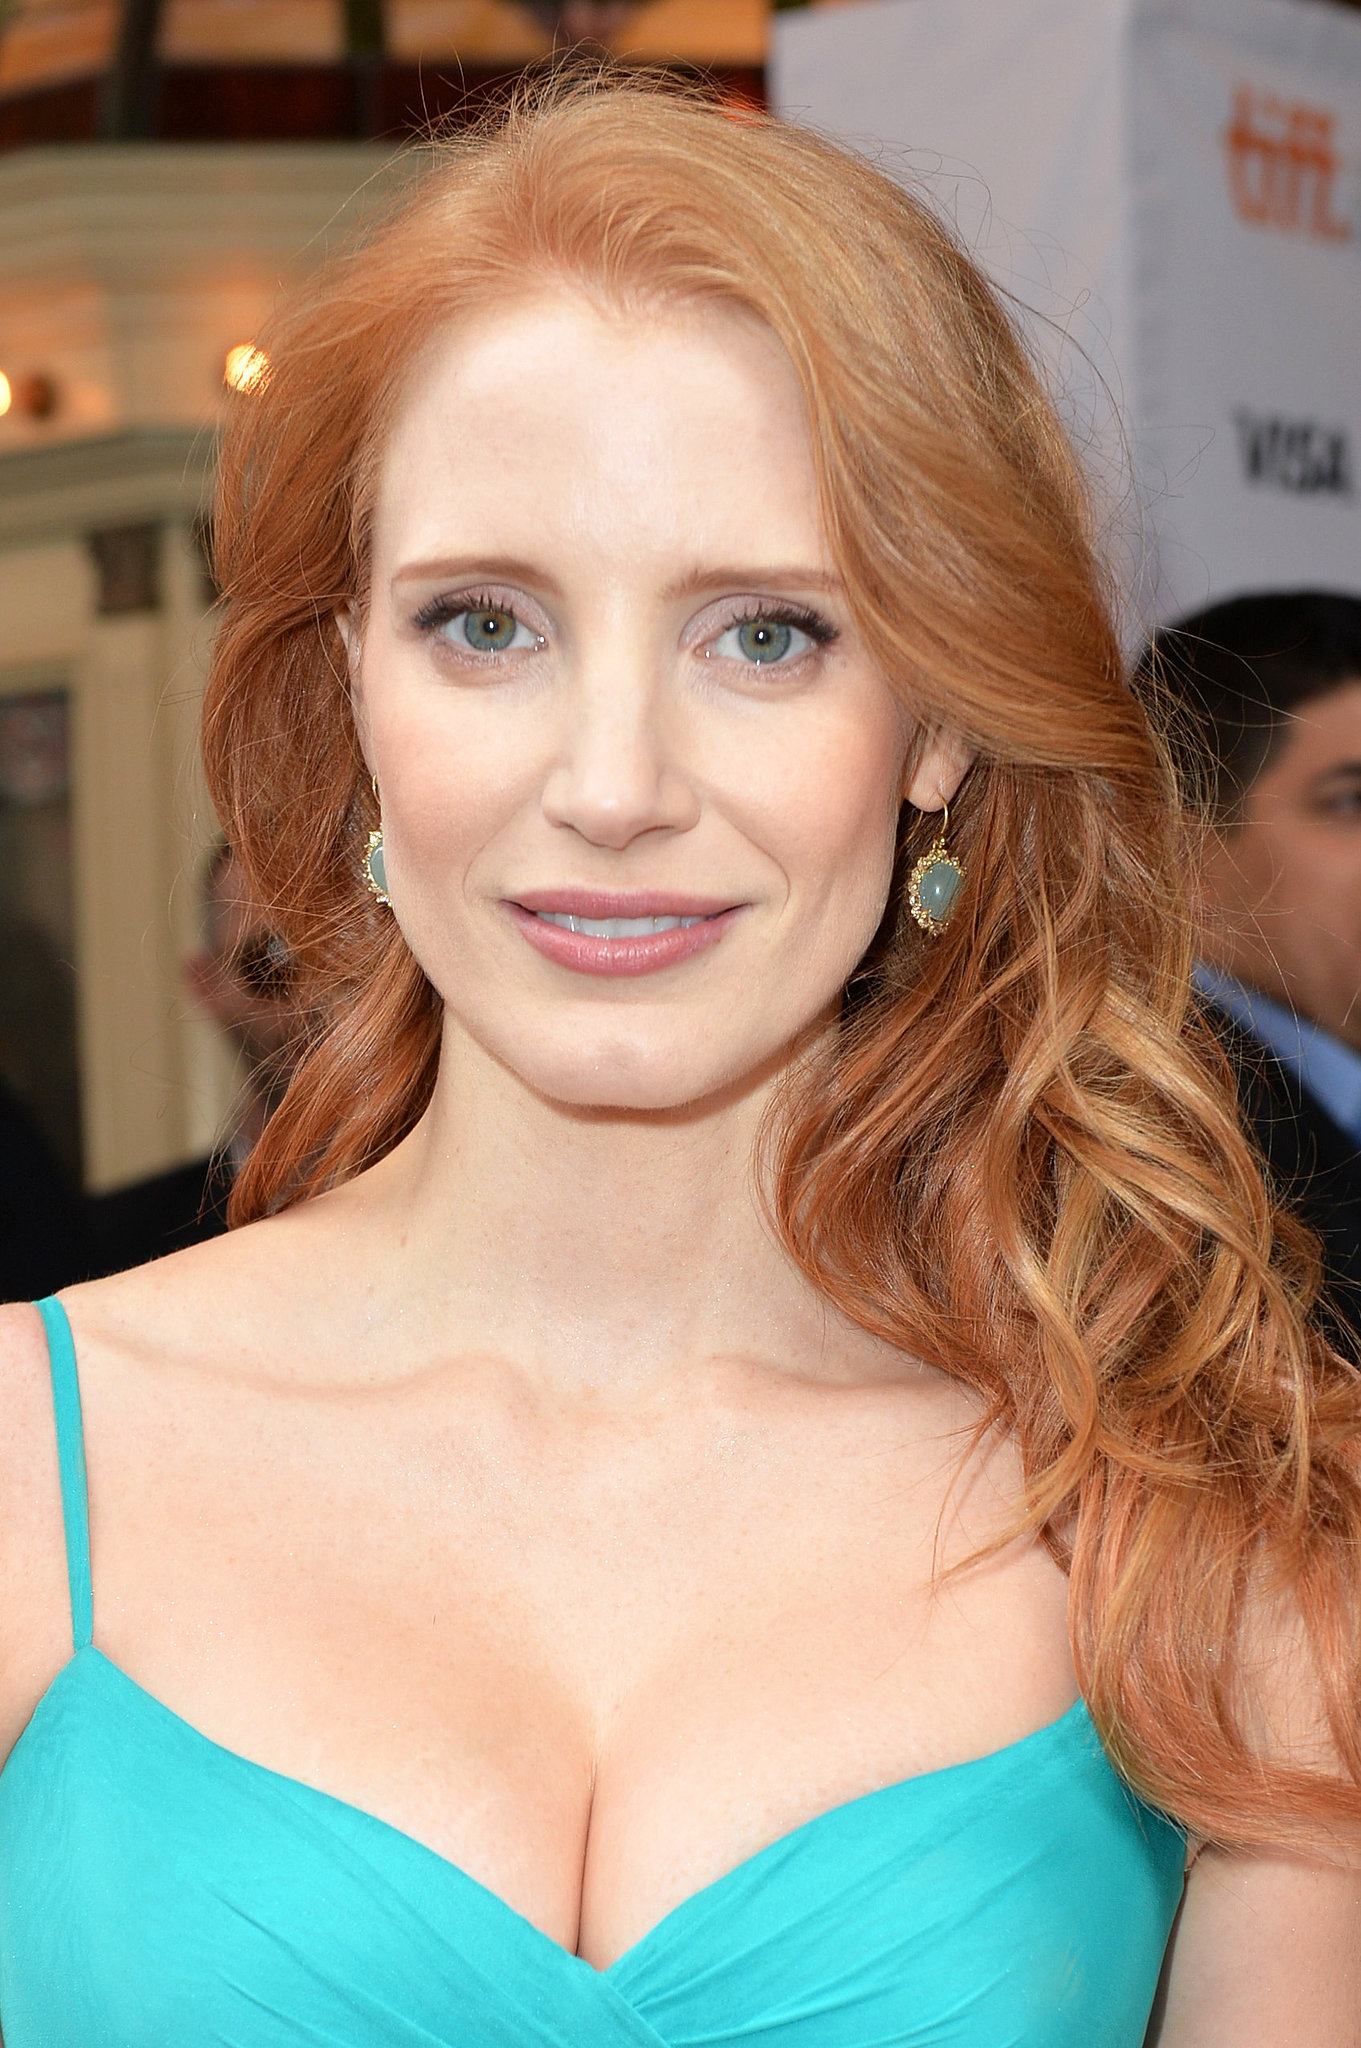 Jessica Chastain went with her signature waves at the premiere of The Disappearance Of Eleanor Rigby: Him And Her.